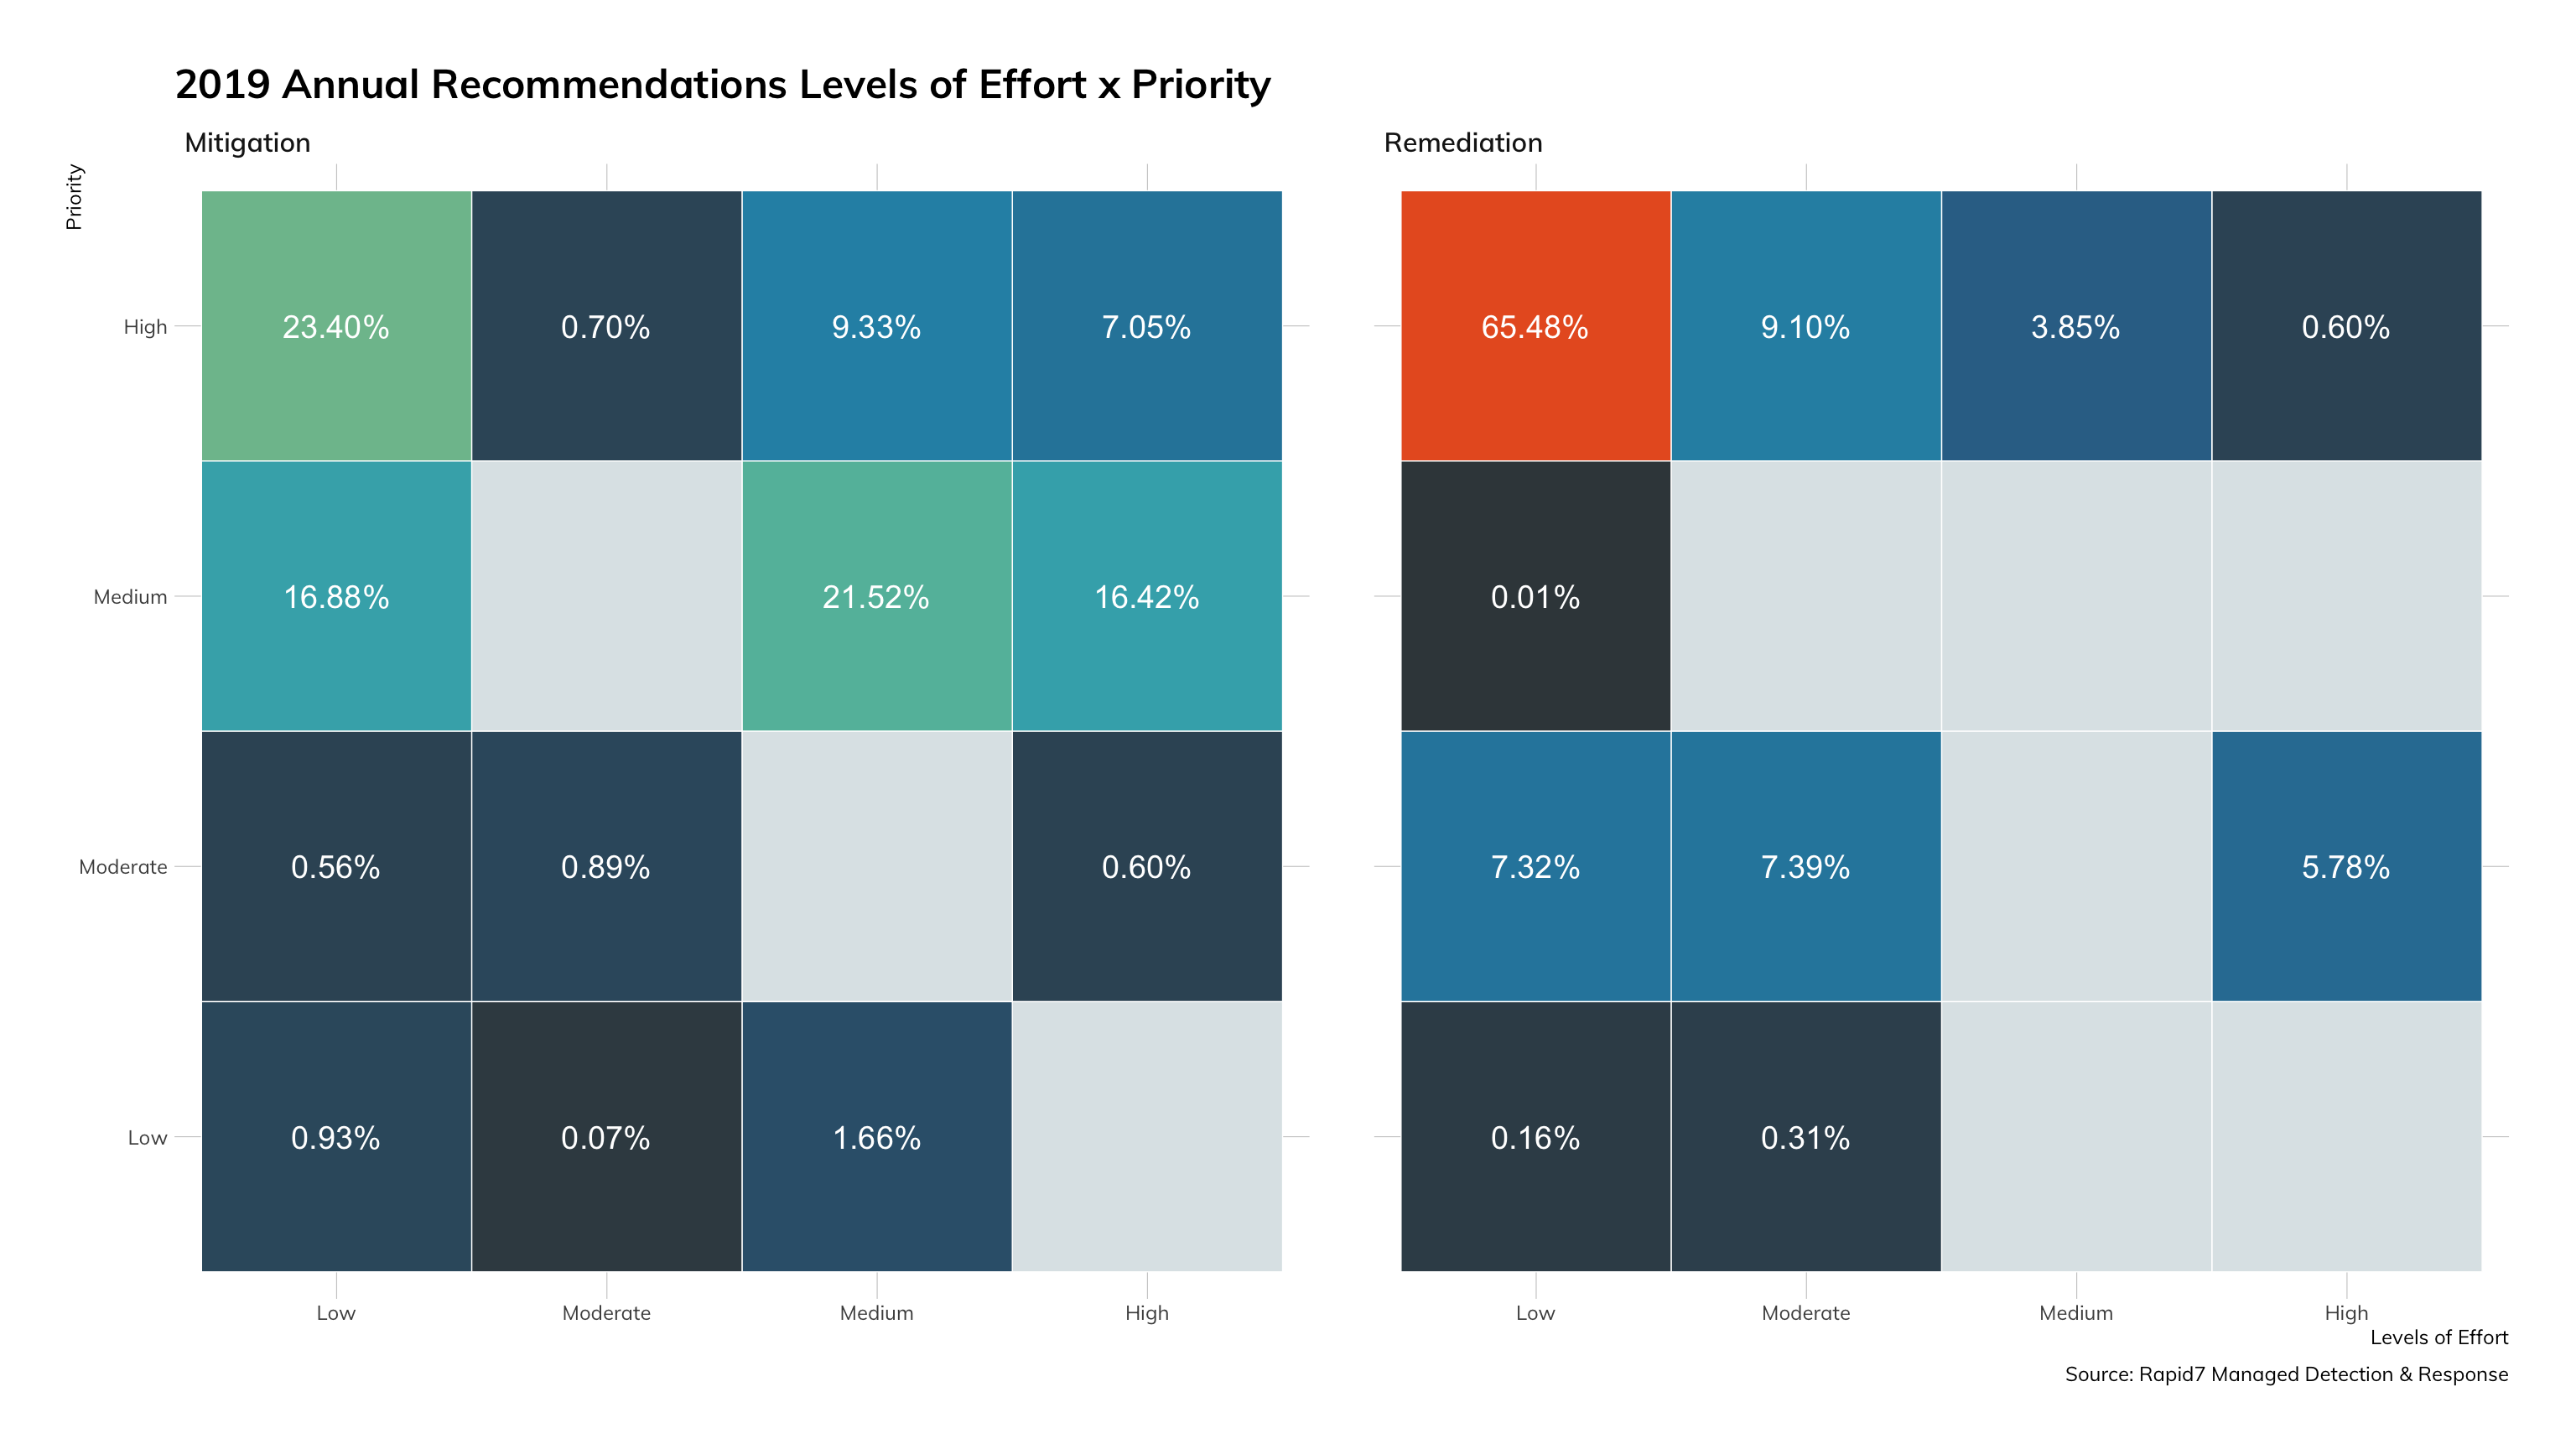 Figure 17: 2019 Annual Recommendation Levels of Effort by Priority